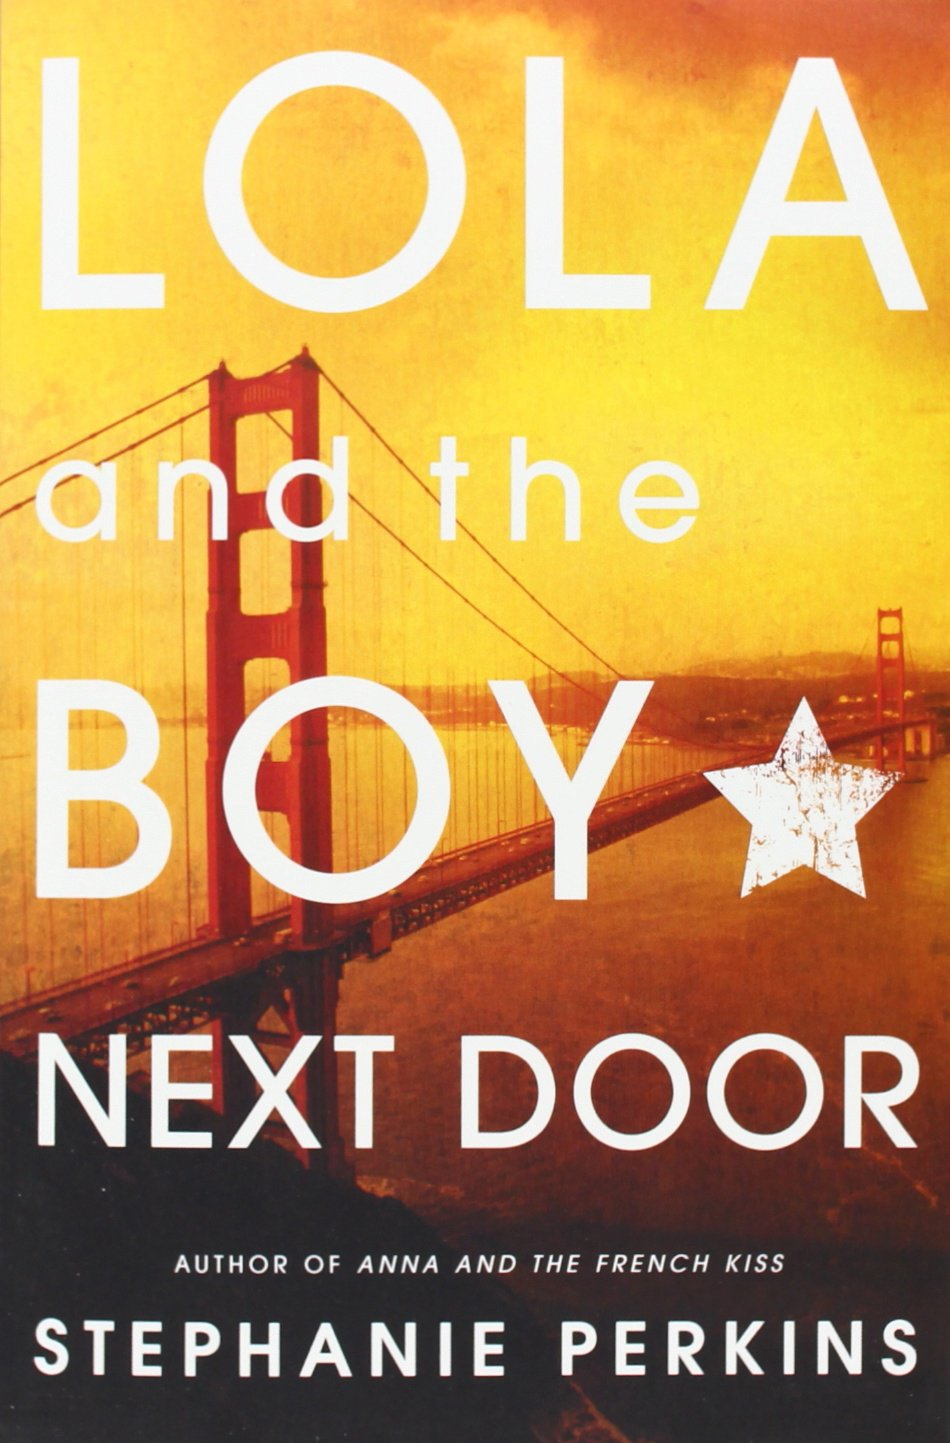 Couverture de ?Lola and the boy next door?